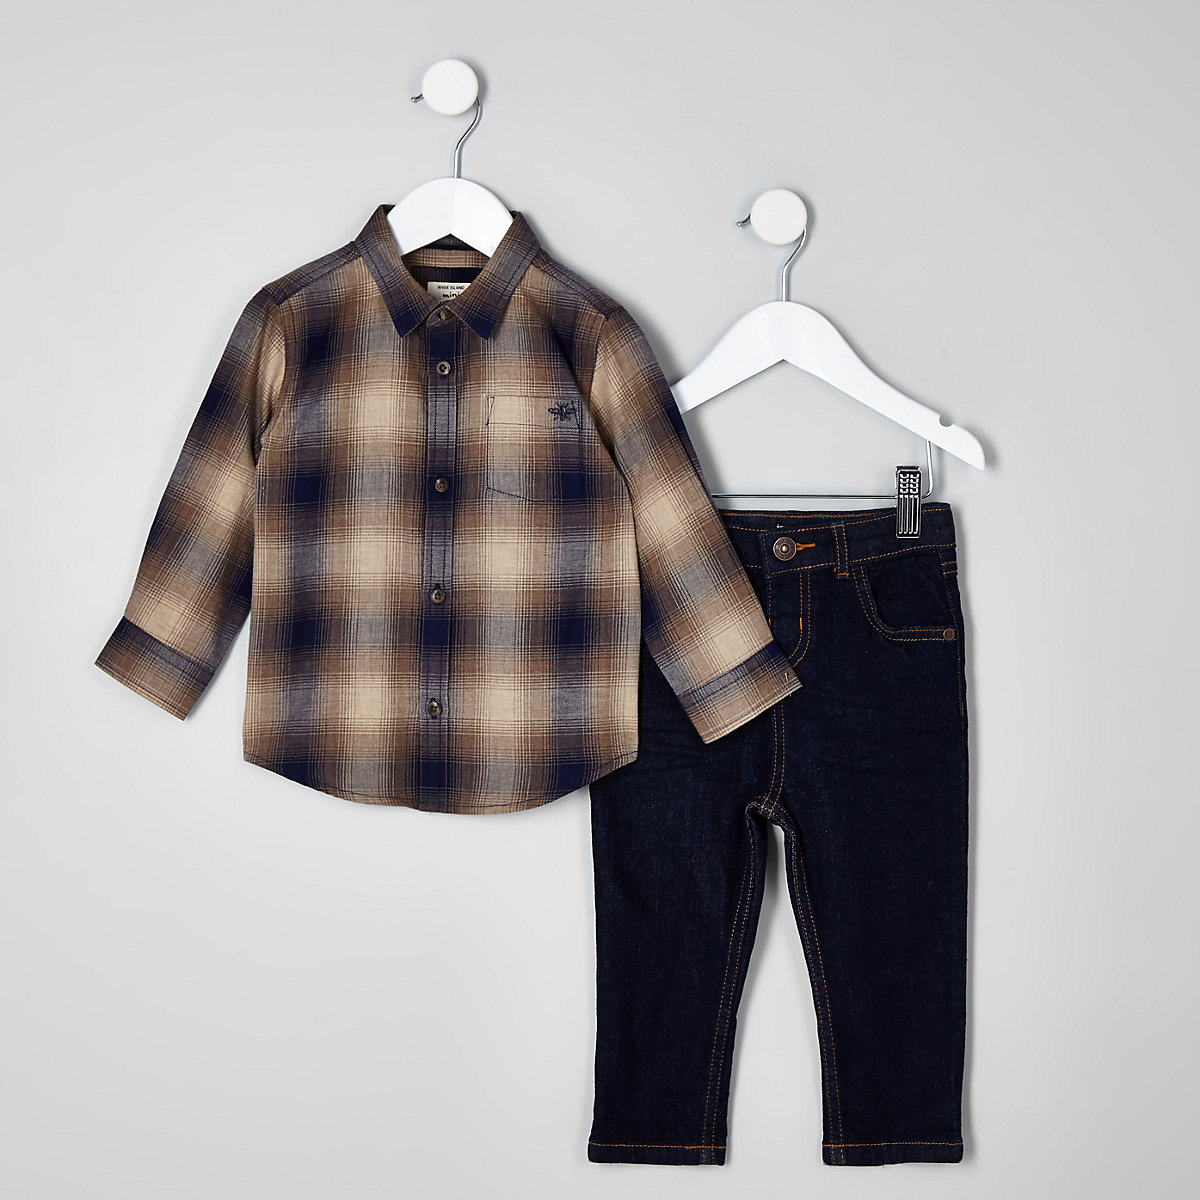 Mini boys brown check shirt and jeans outfit